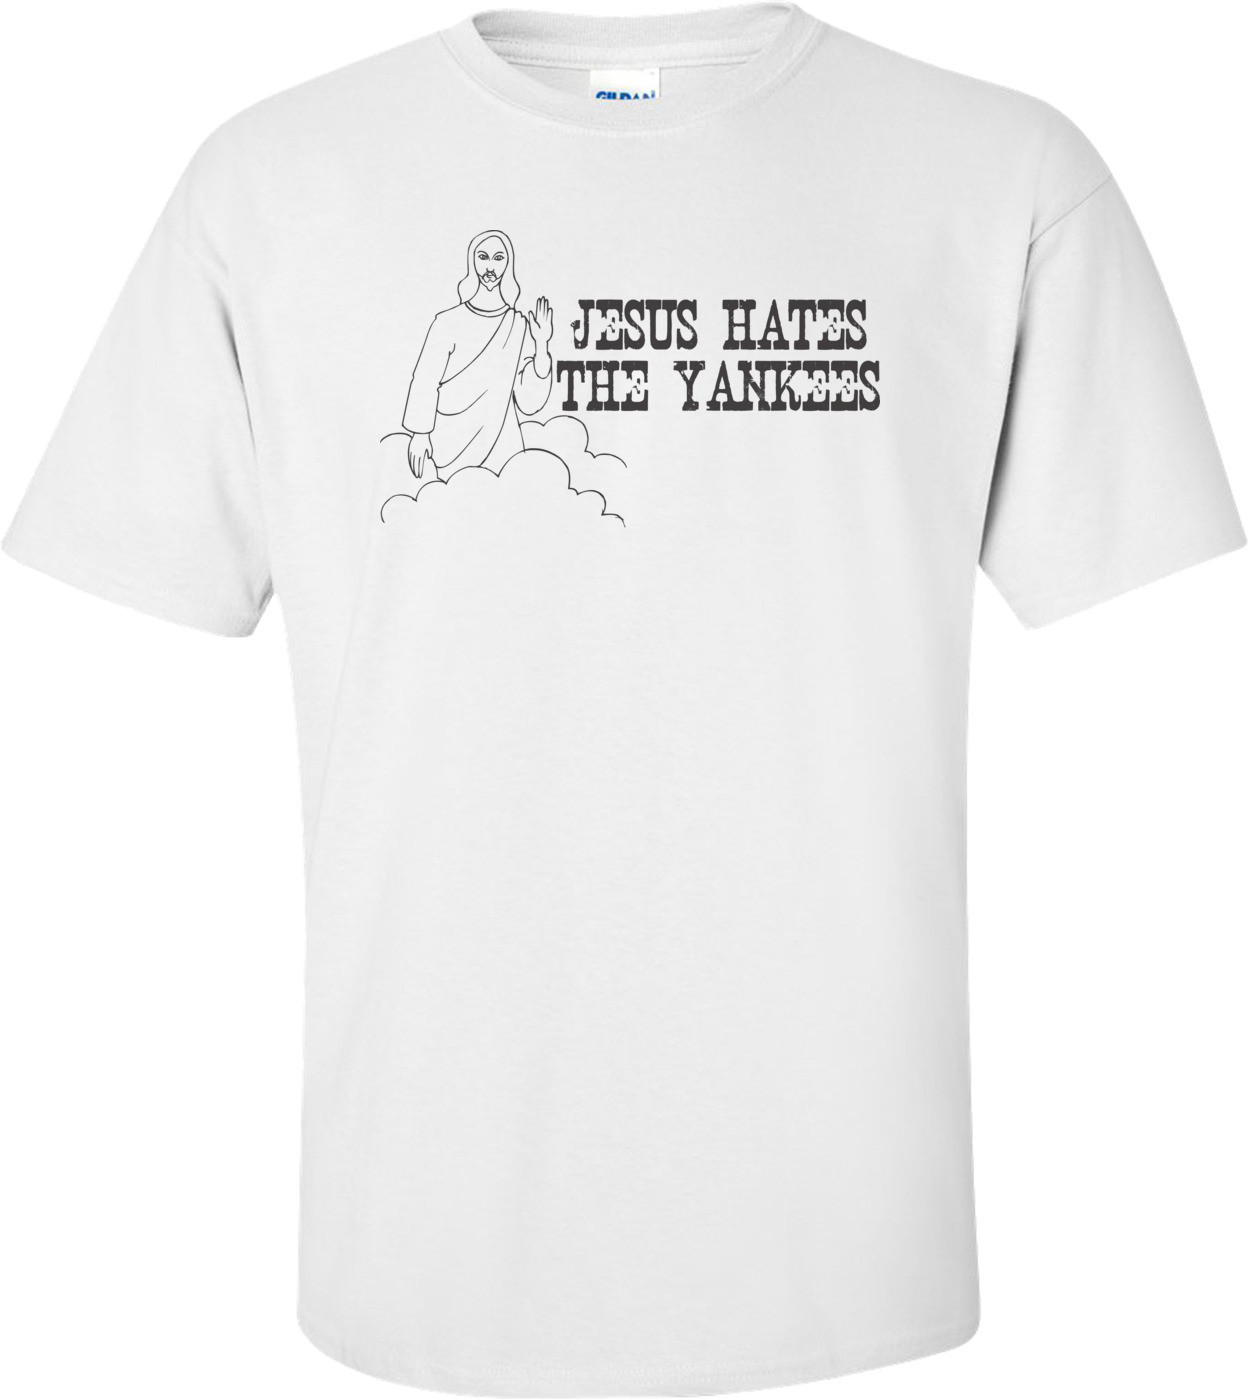 Jesus Hates The Yankees T-shirt